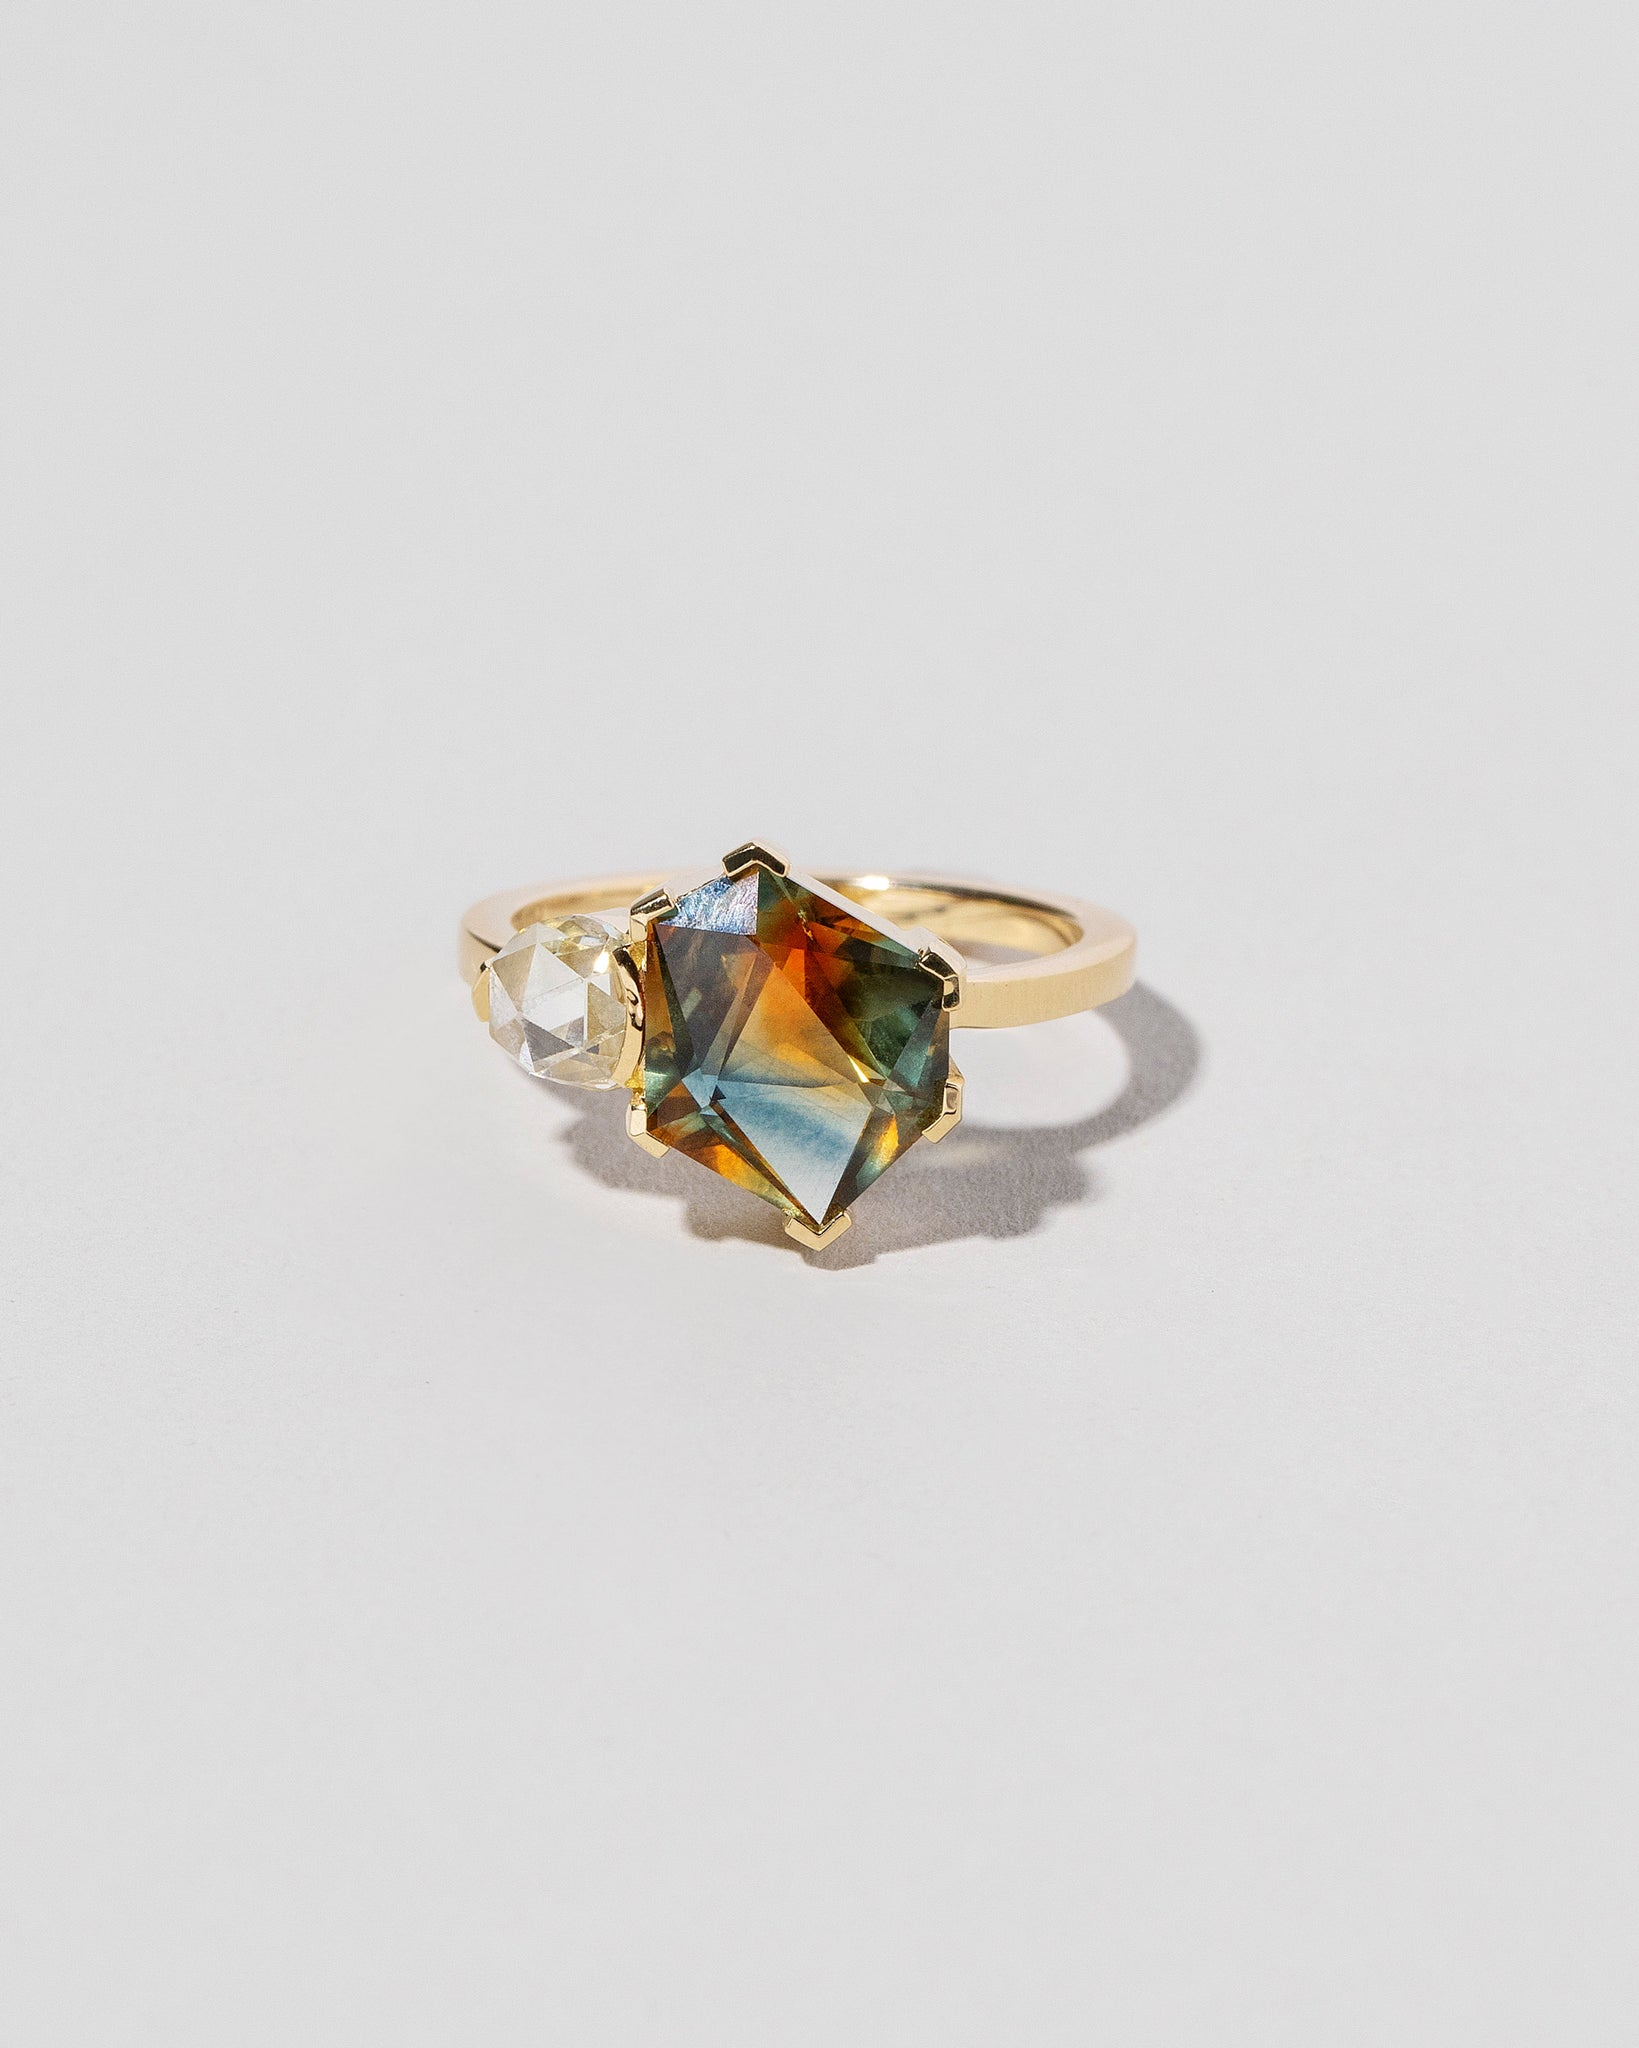 Kaleidoscope Sapphire Geometric Ring on light color background